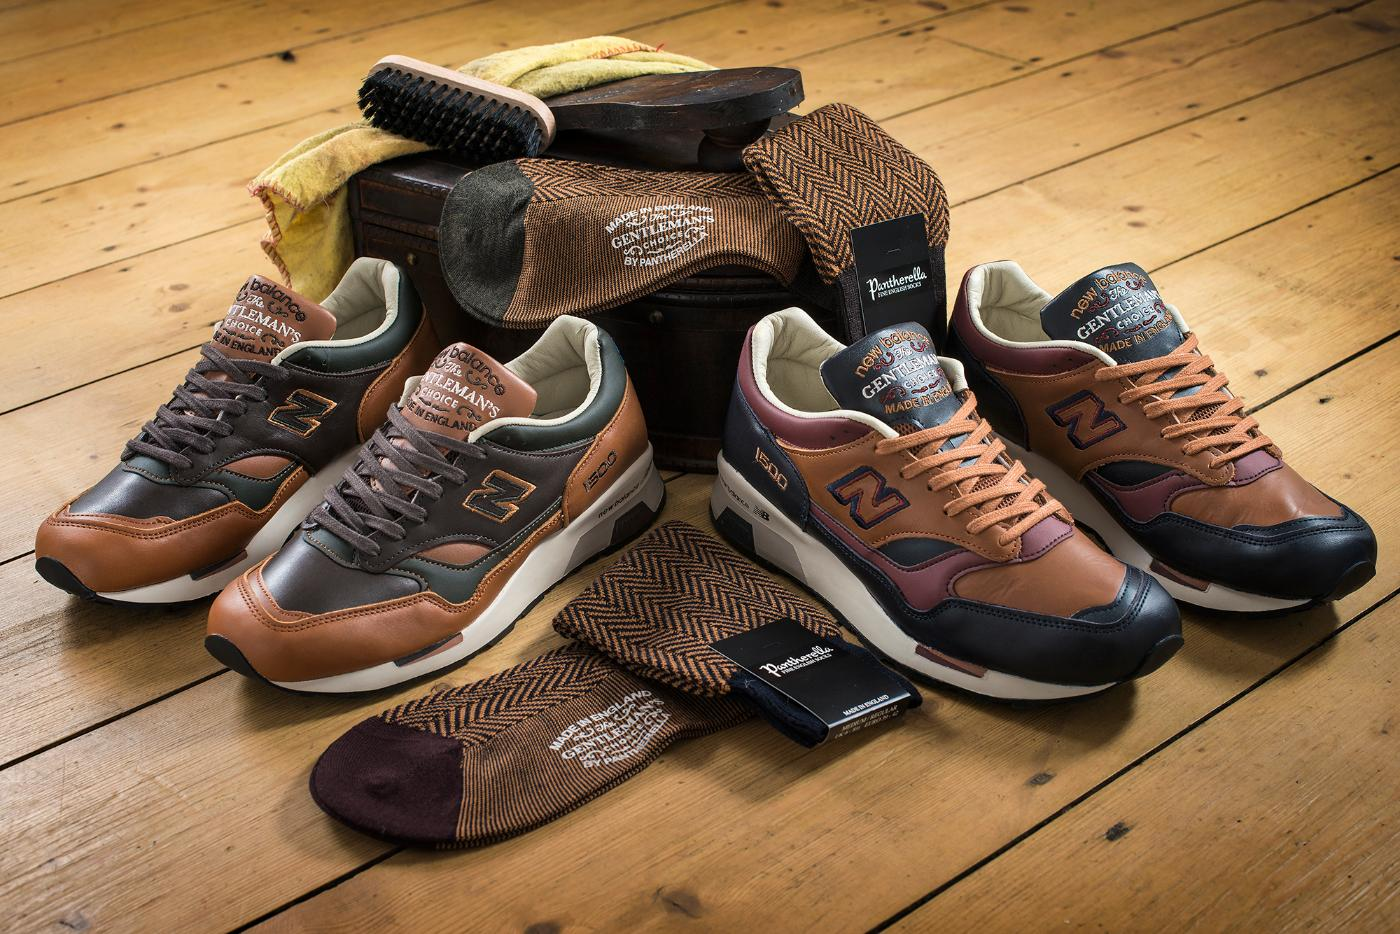 Pantherella x New Balance 1500 Gentlemens Choice Pack 1